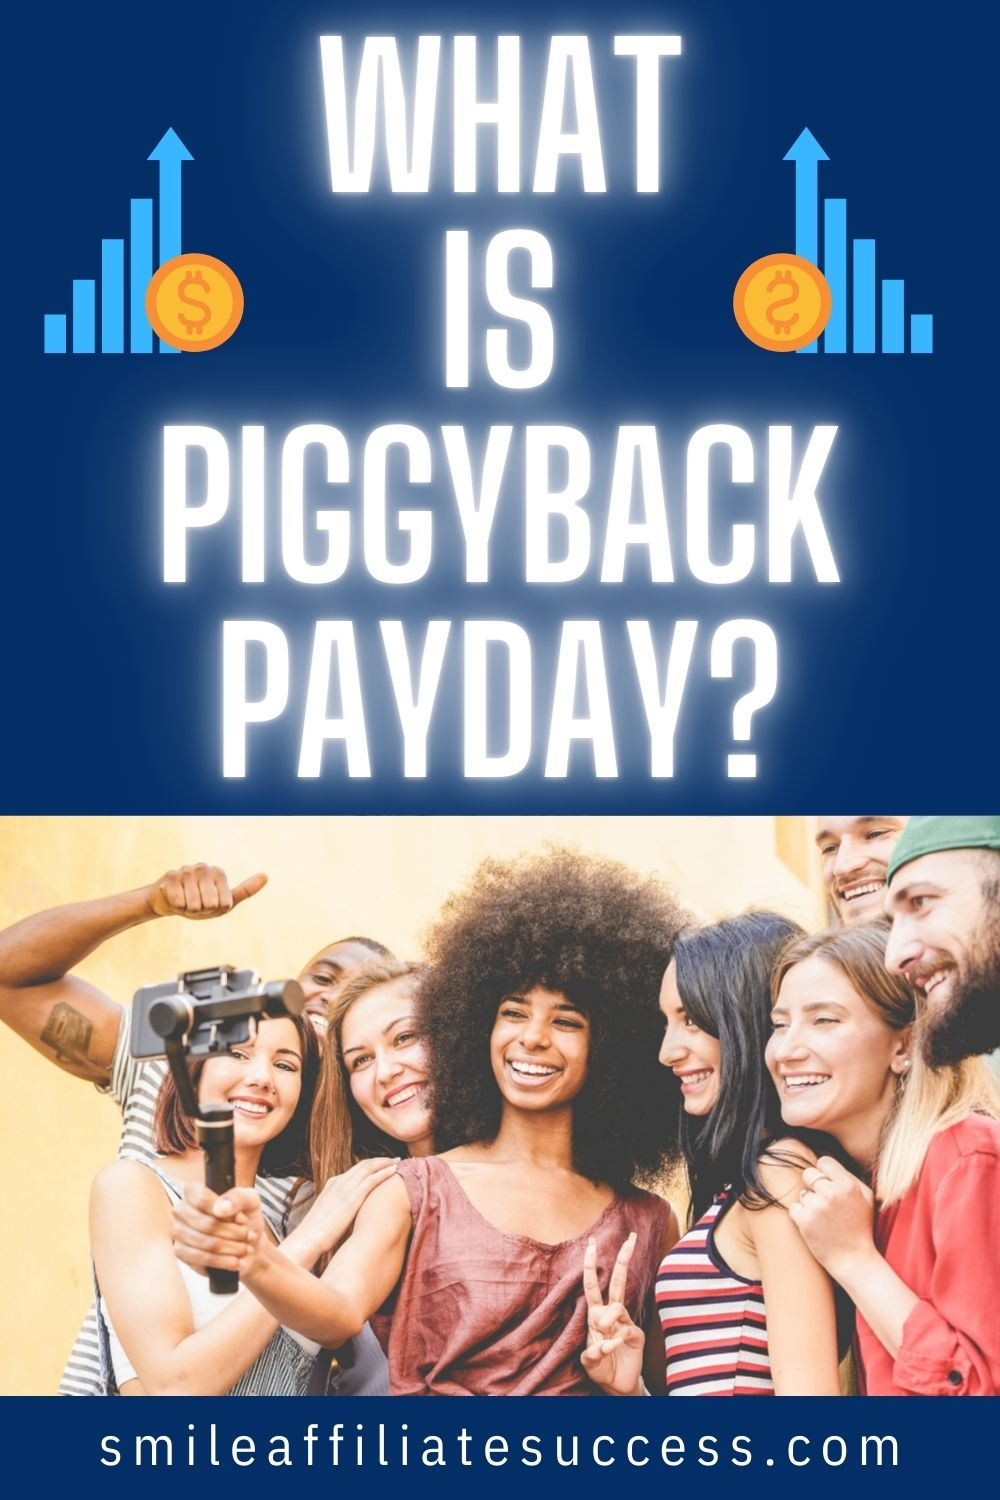 What Is Piggyback Payday?